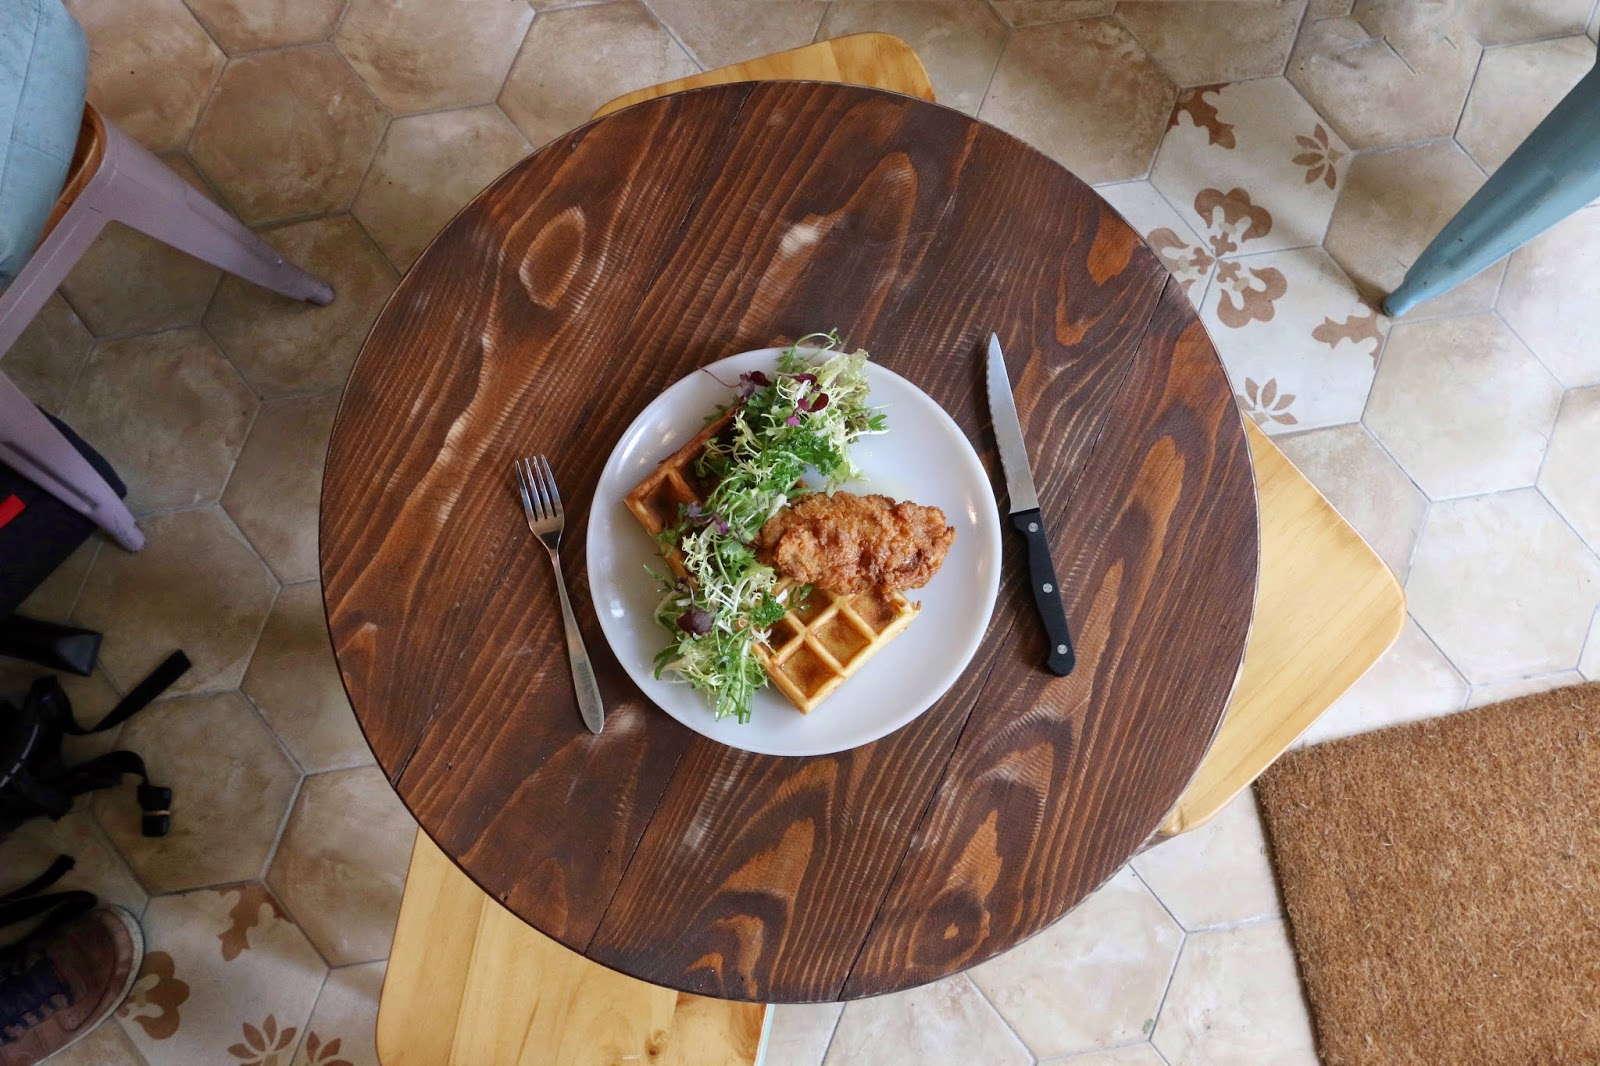 Artisan Garden Cafe, Sai Ying Pun, Buttermilk Fried Chicken Waffle